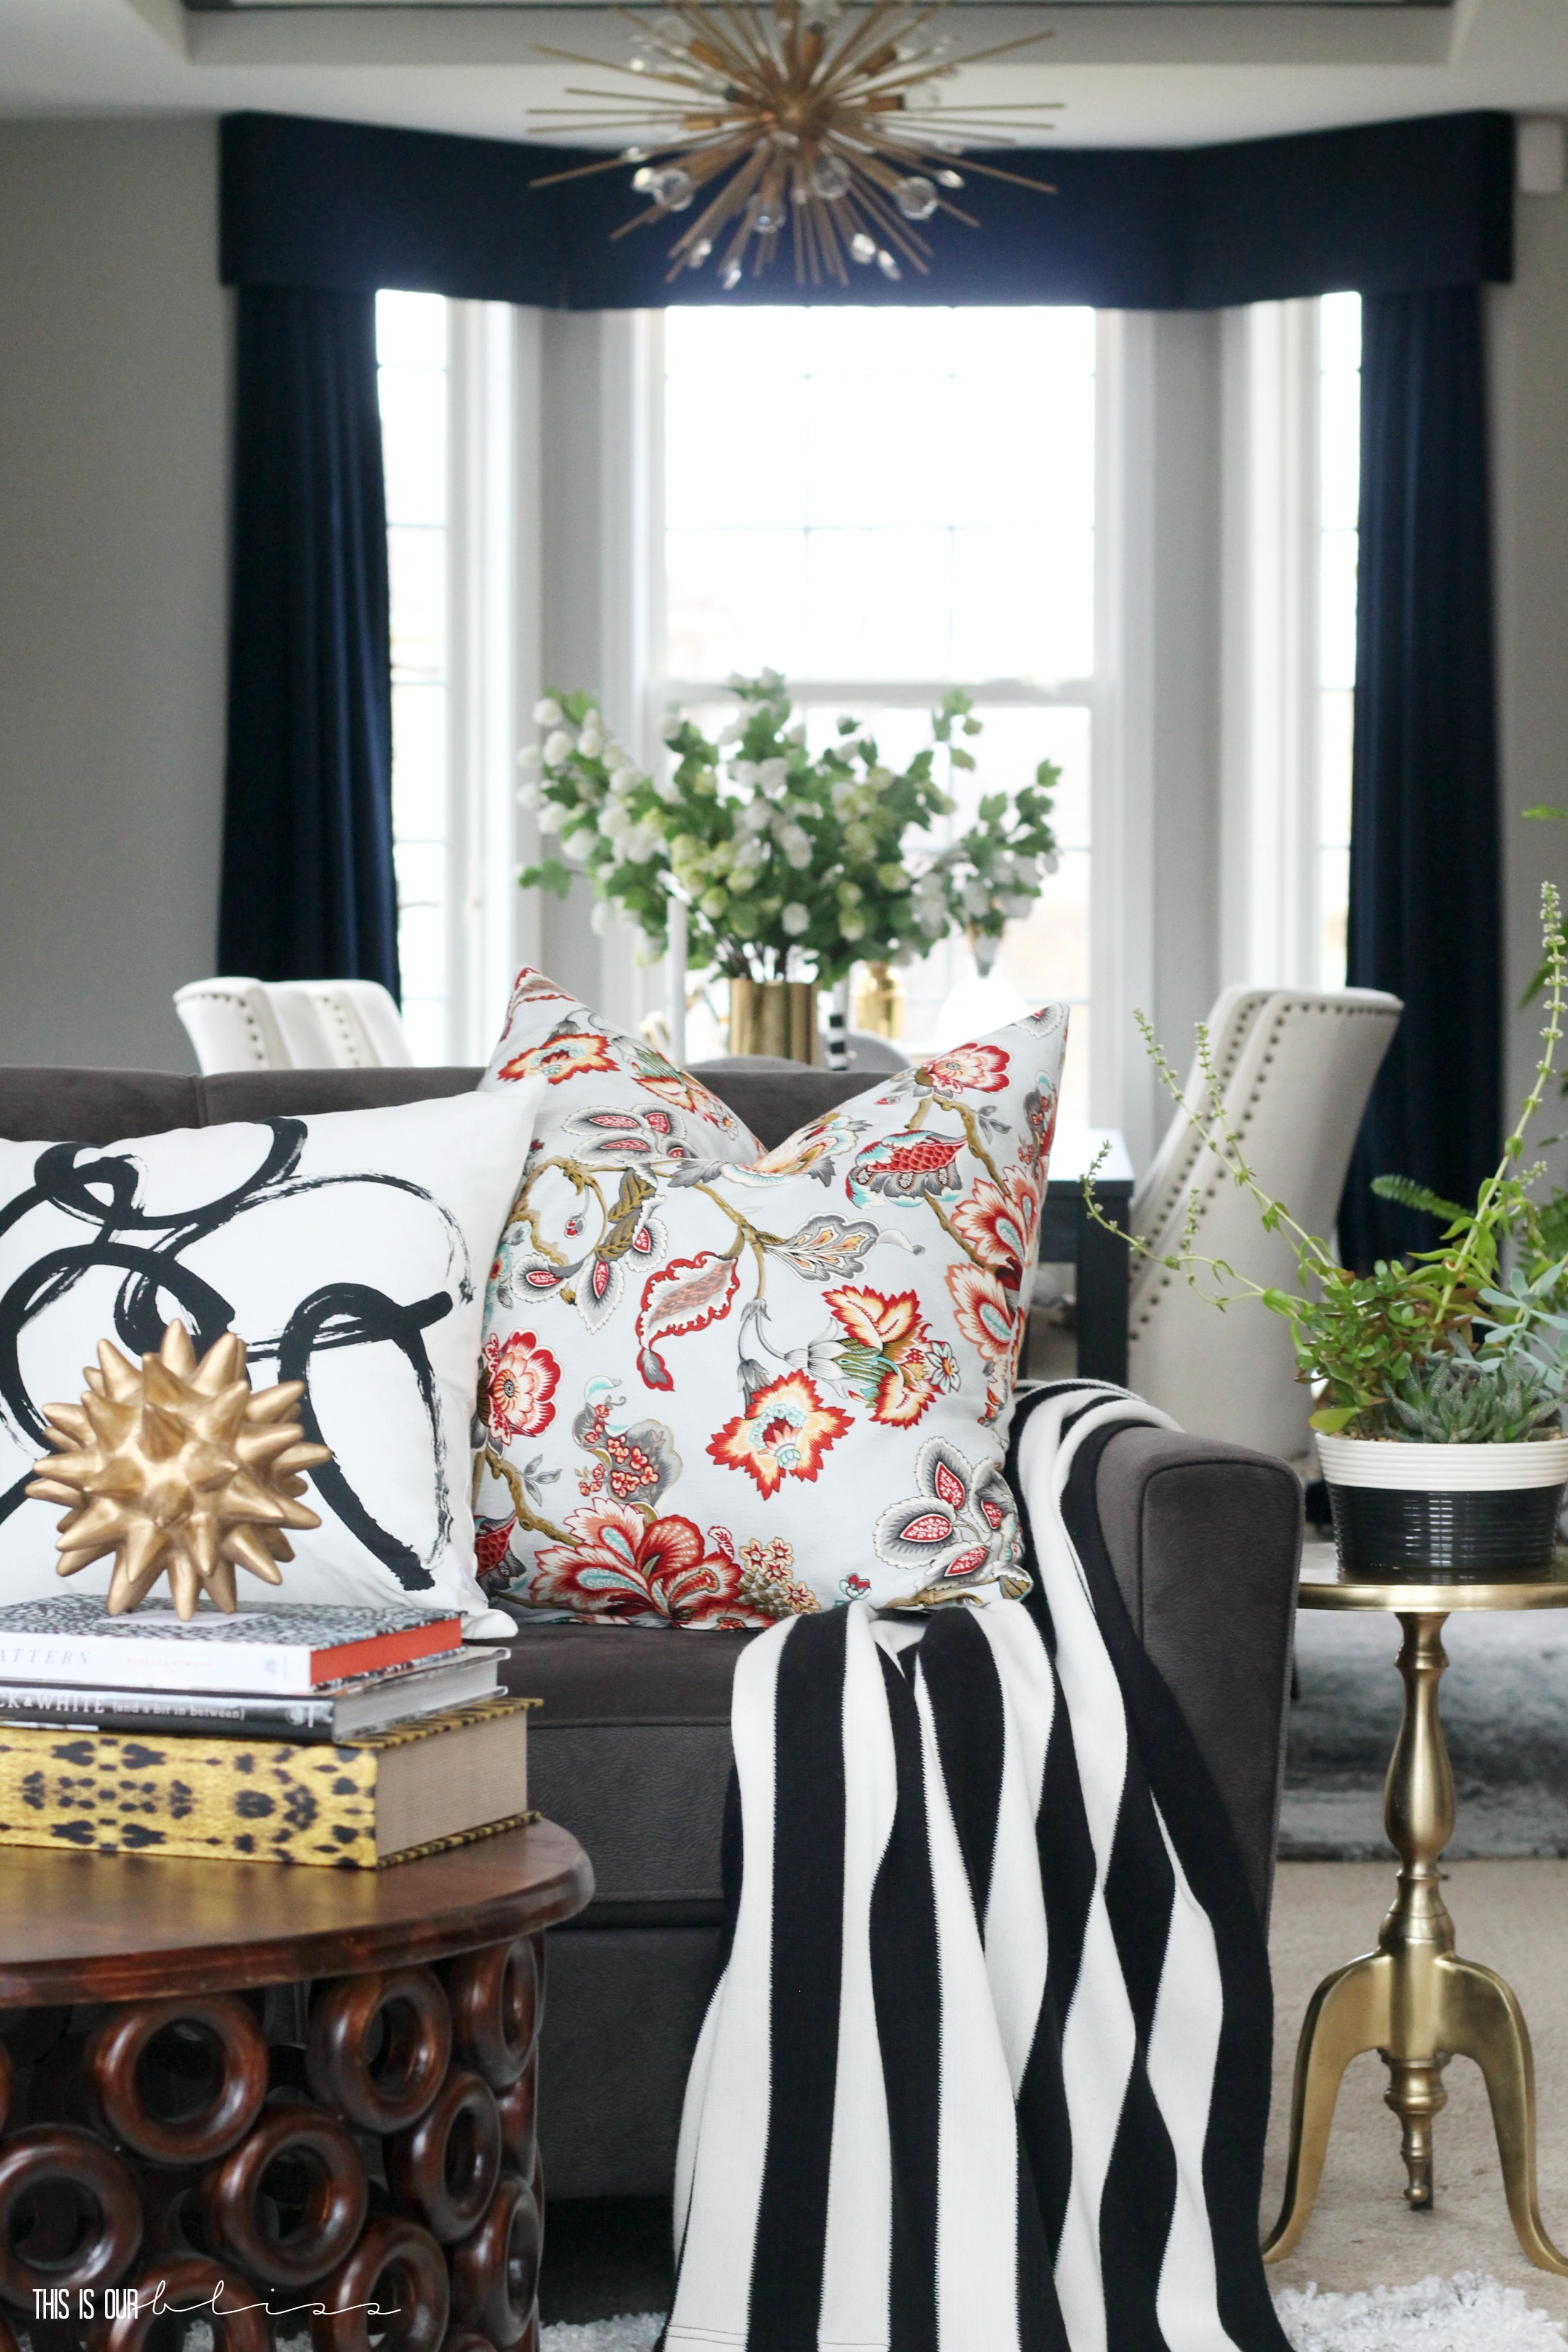 Mixing Decor Styles   My Home Style Mix & Match   This is our Bliss